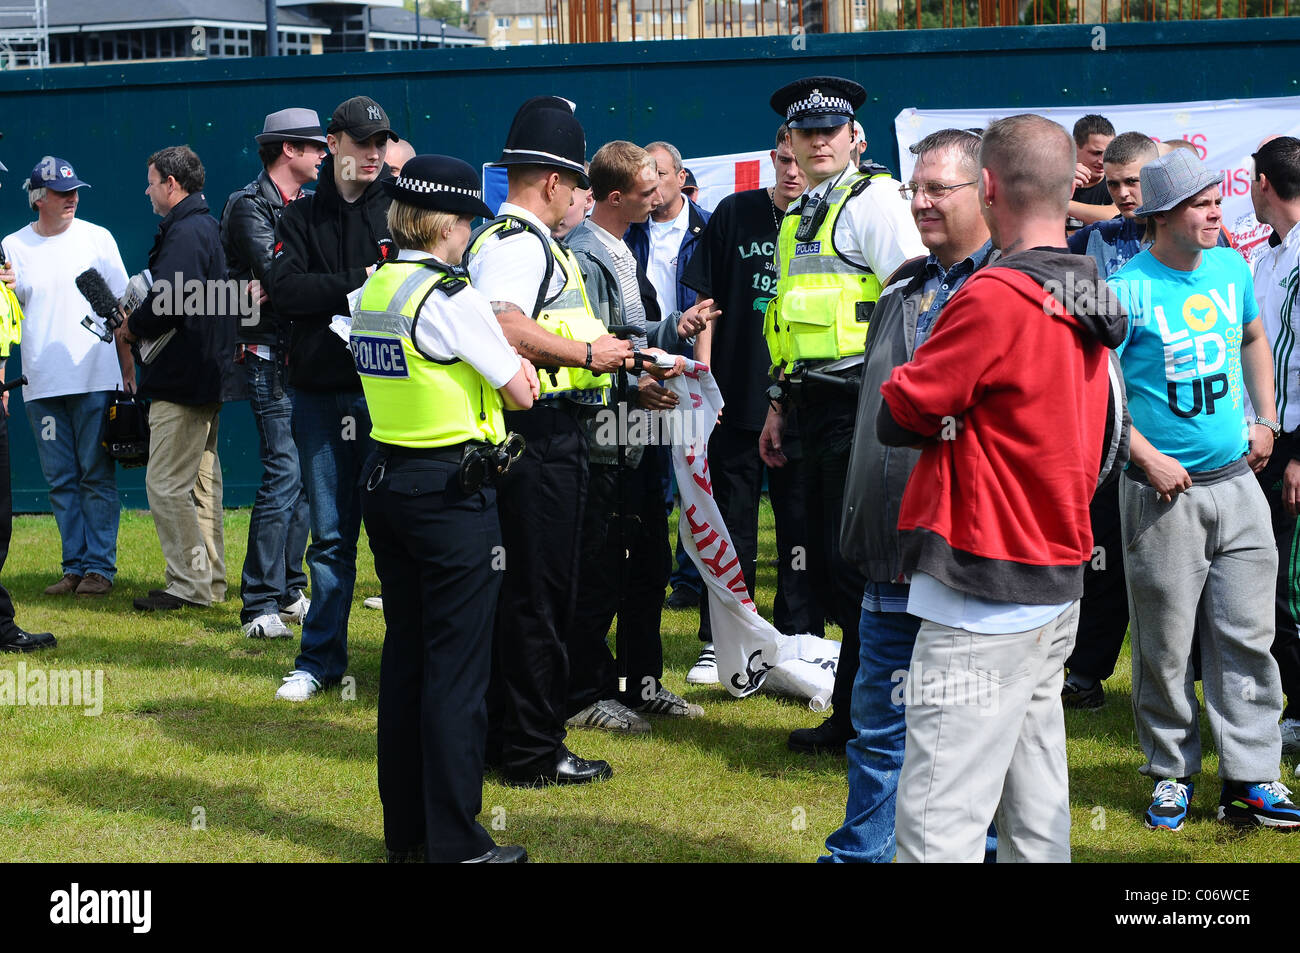 EDL supporters being searched by the police - Stock Image